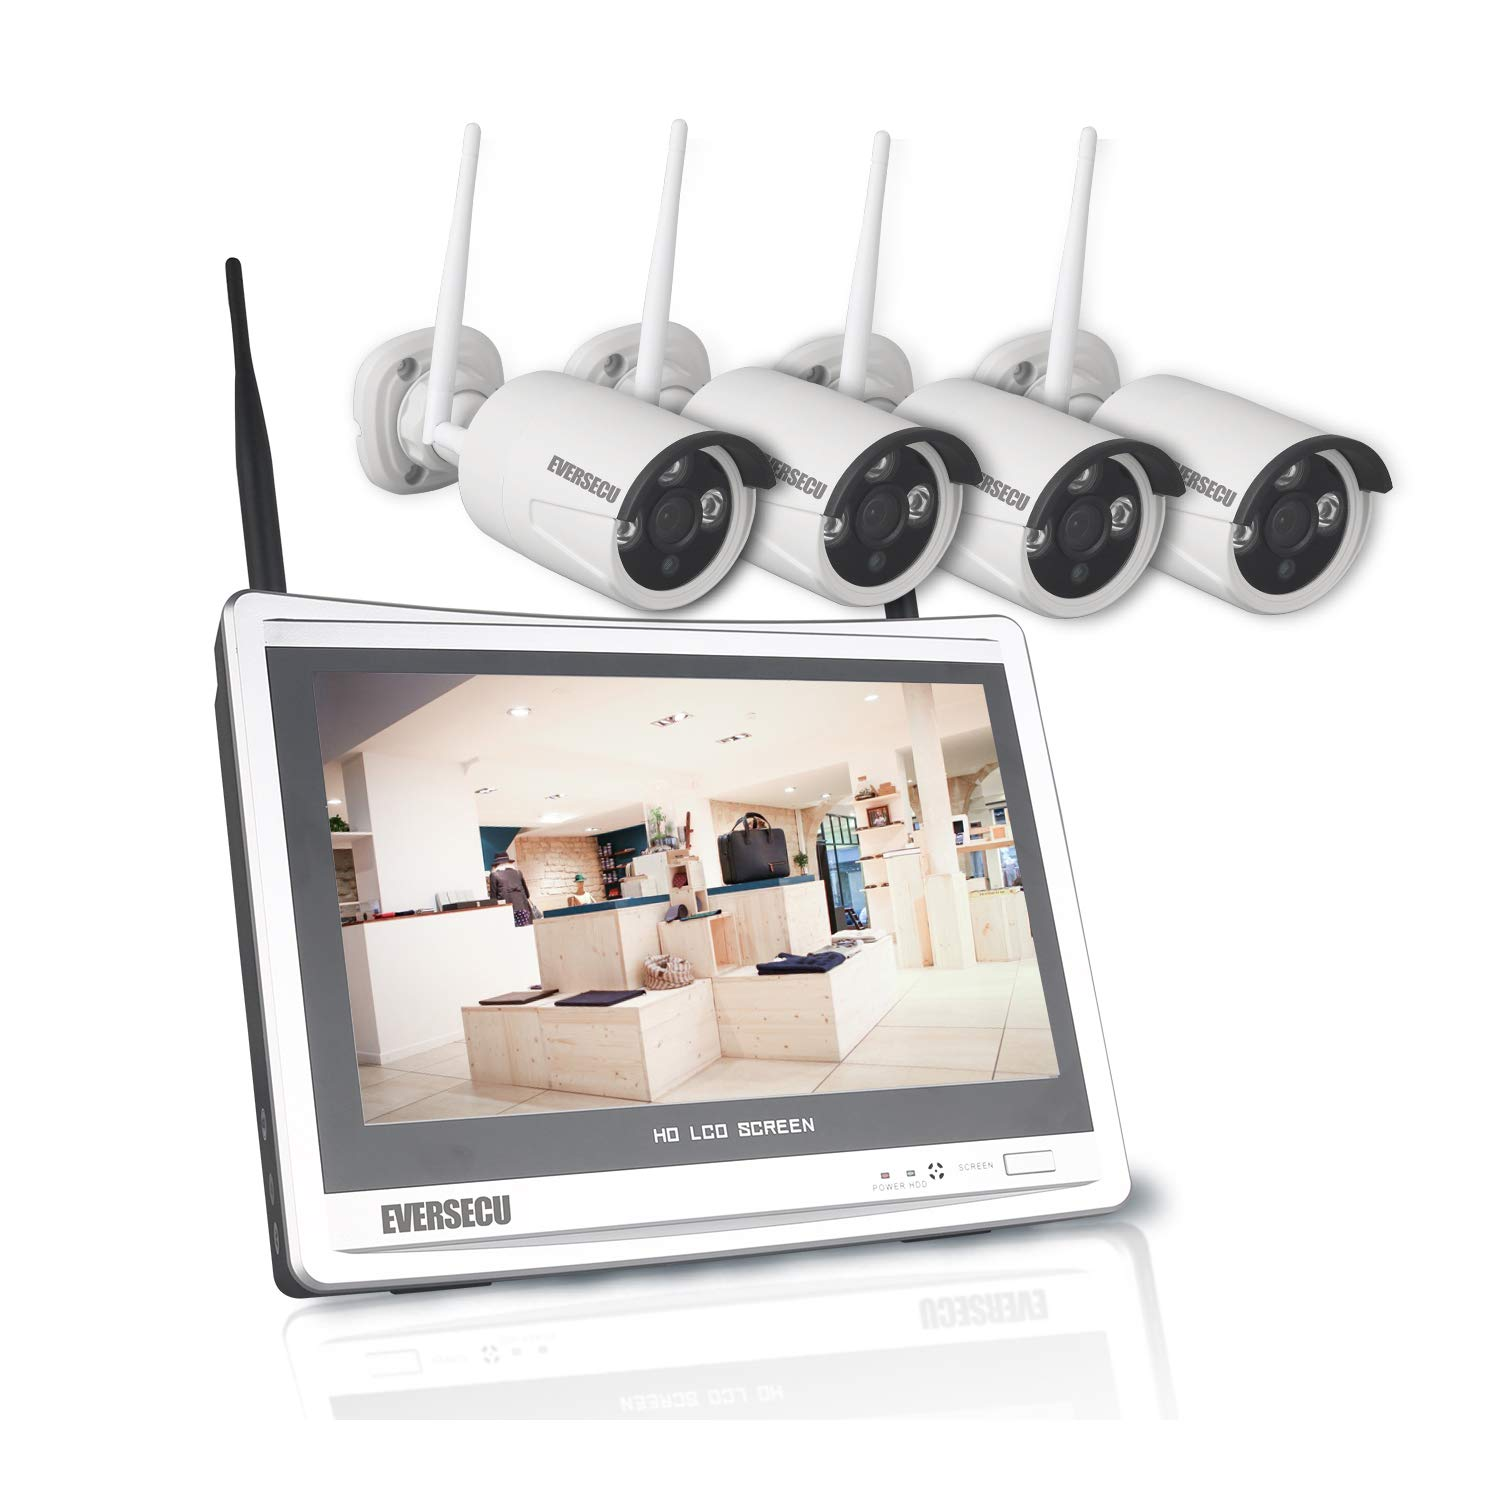 1080P Home Security Camera System Wireless with 12 Inch Monitor WiFi Surveillance NVR Kits, 4 Channel WiFi Video Security System with 4Pcs 2.0MP IP Cameras,Free APP(No HDD) by EVERSECU